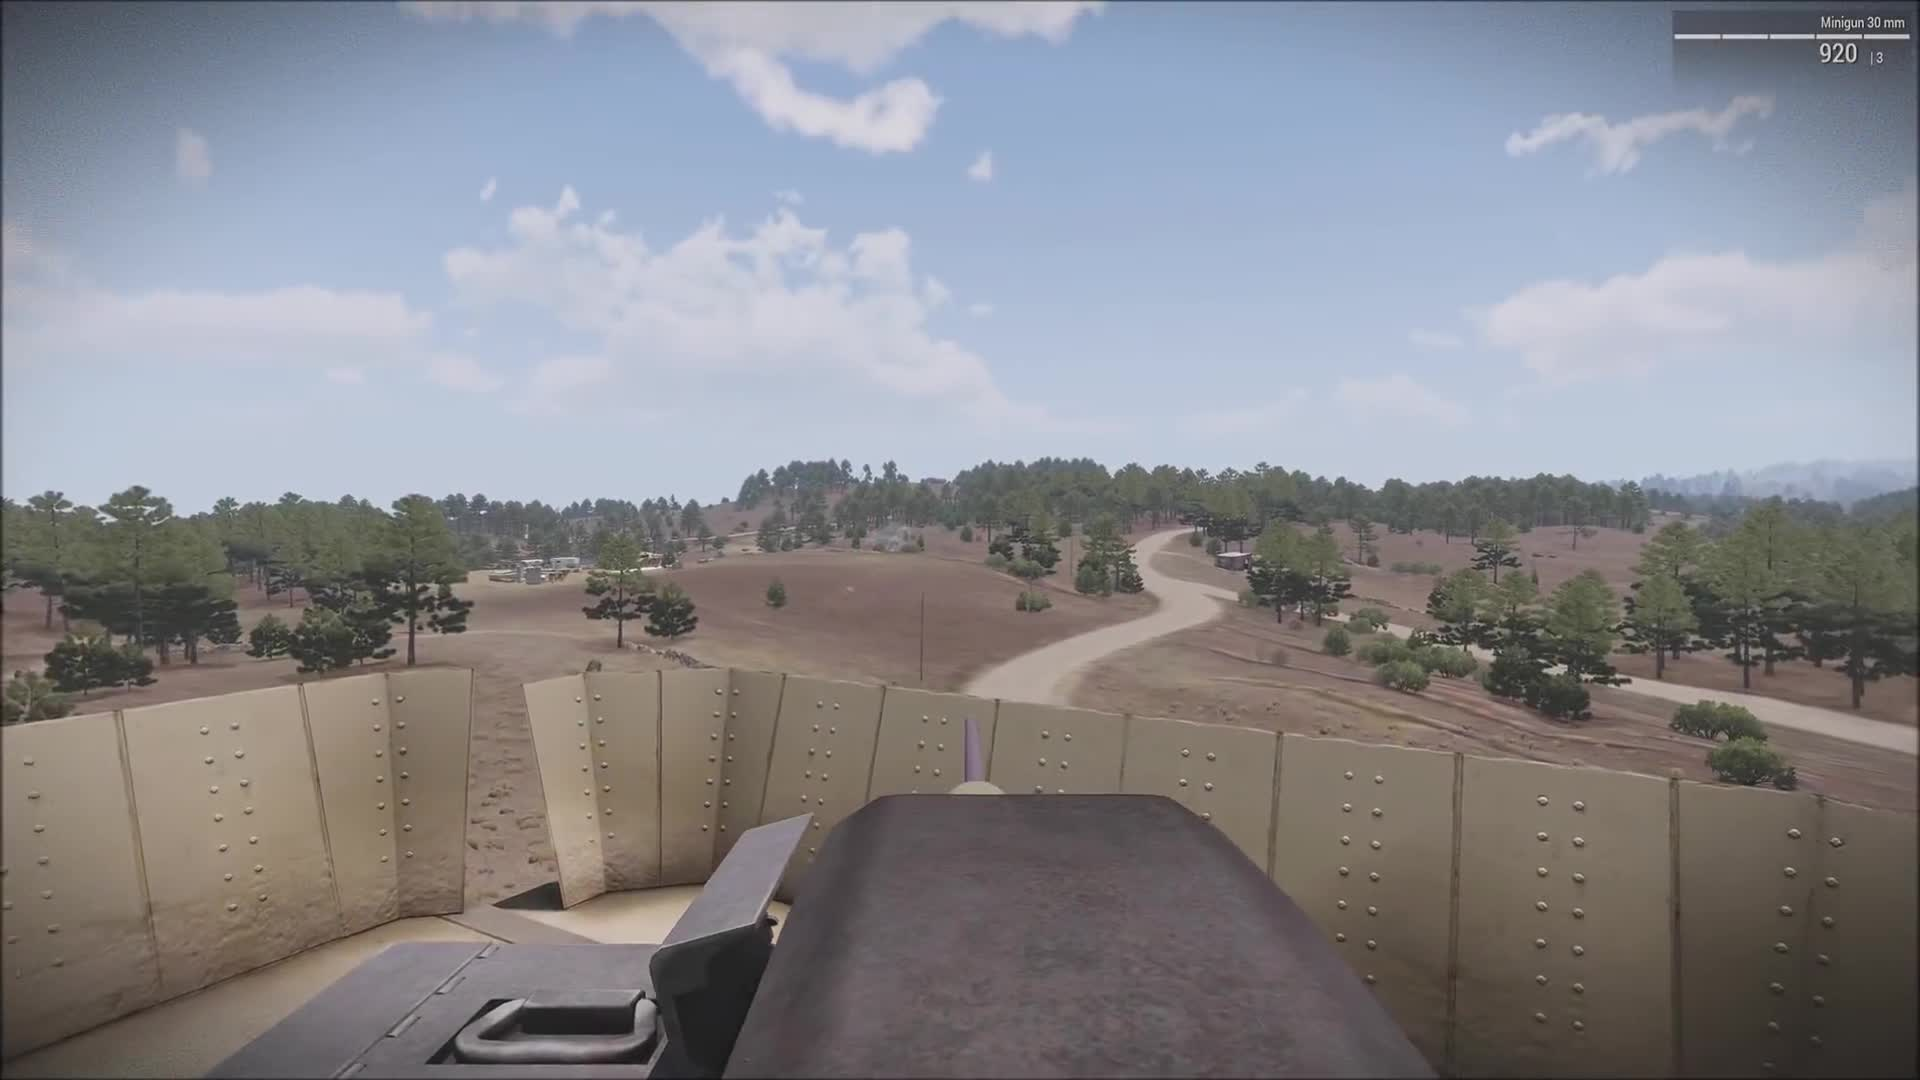 Achilles, Arma, Arma 3, Game, Lcpl, Lcpl., Liru, Scenario, Zeus, gaming, 30mm gatling added to a 50 cal turret. What can go wrong? GIFs